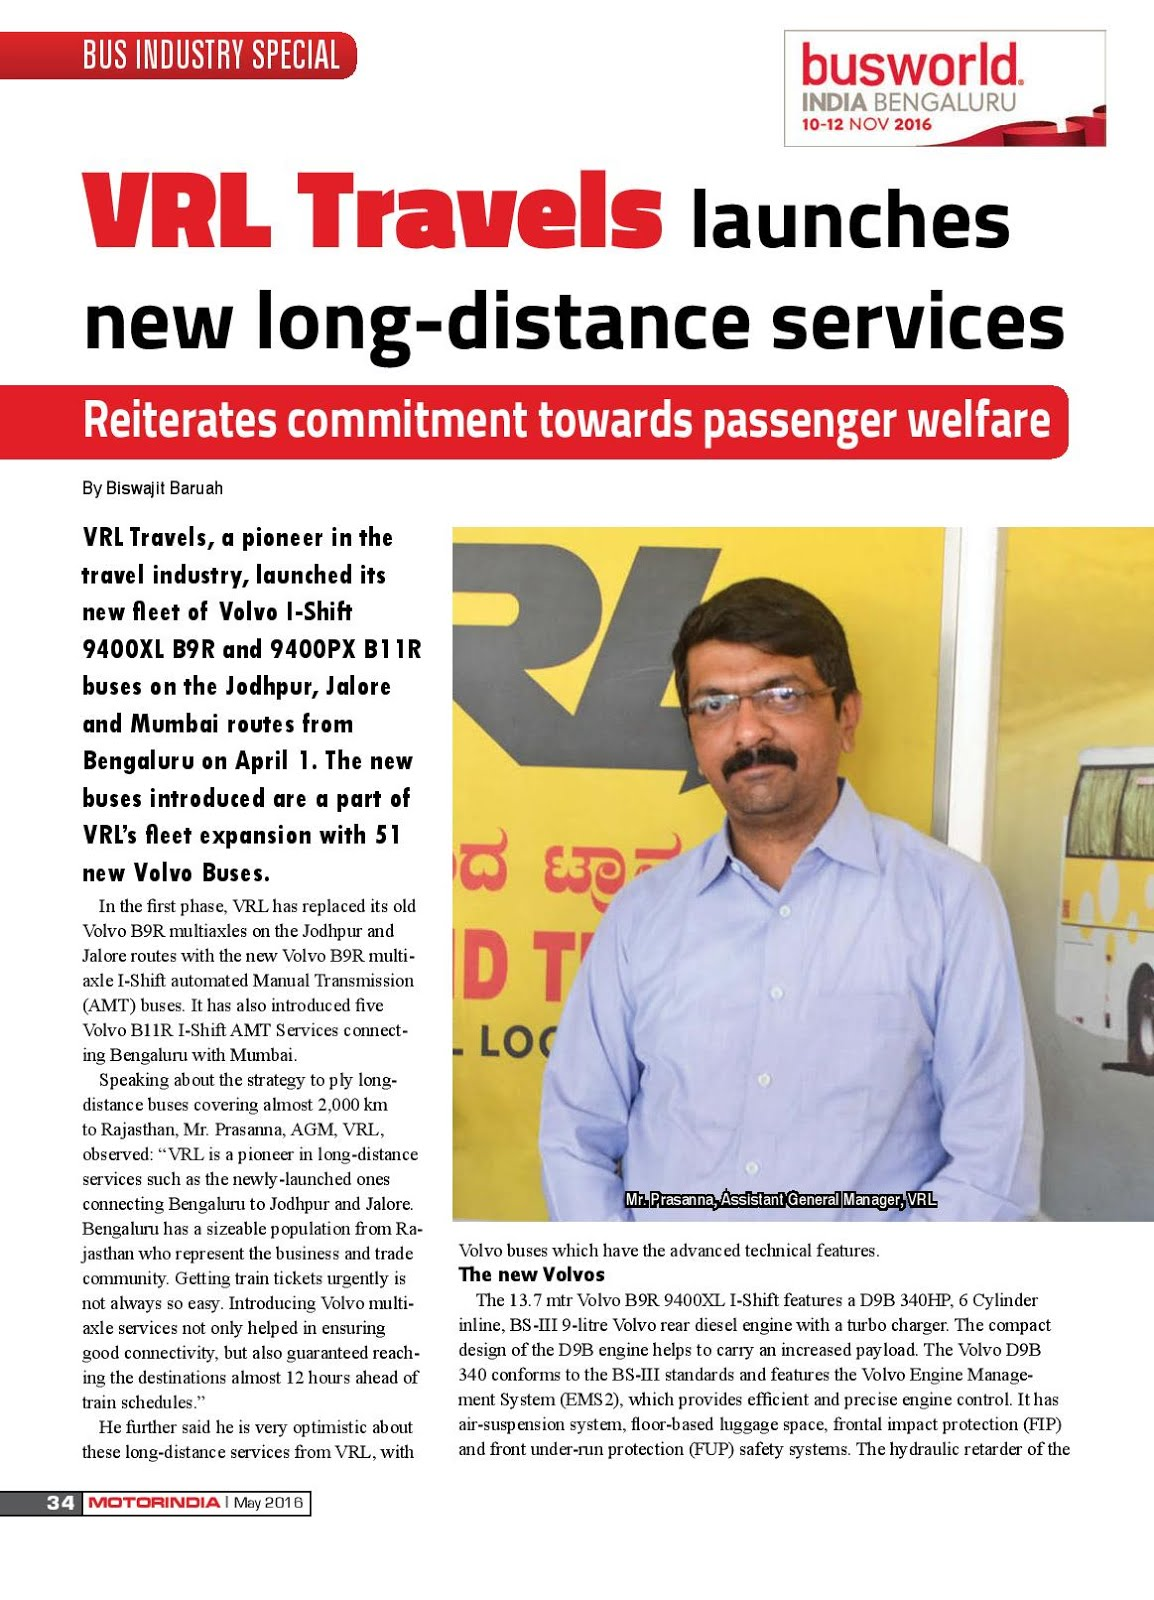 MOTOR INDIA ARTICLE 4 : VRL TRAVELS